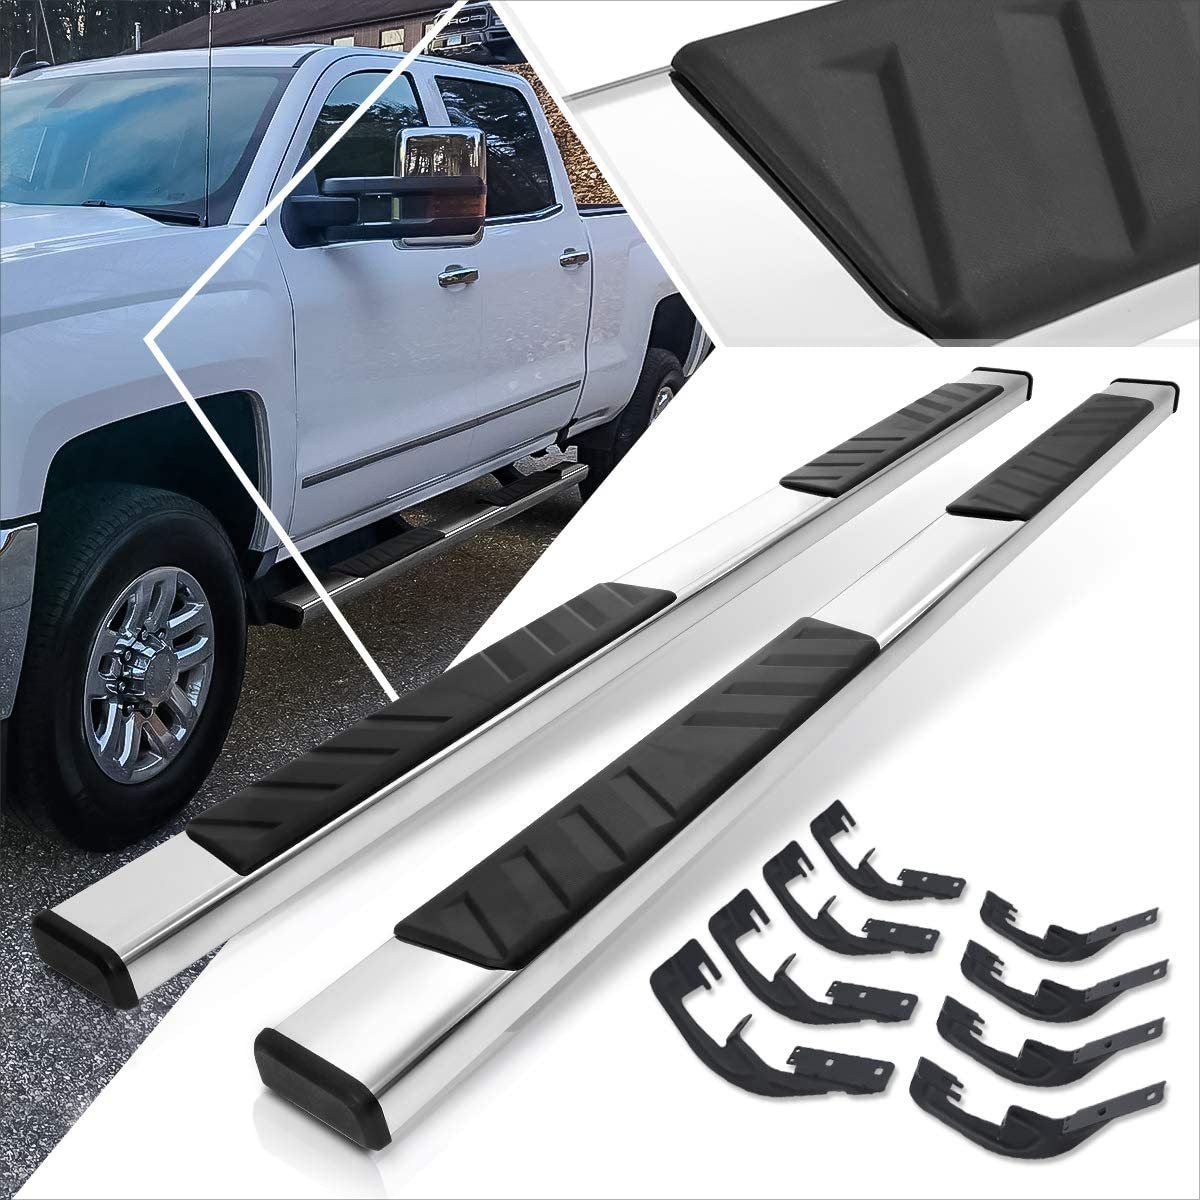 5 Inches Chrome Running Board Side Step Nerf Bar for Chevy Silverado